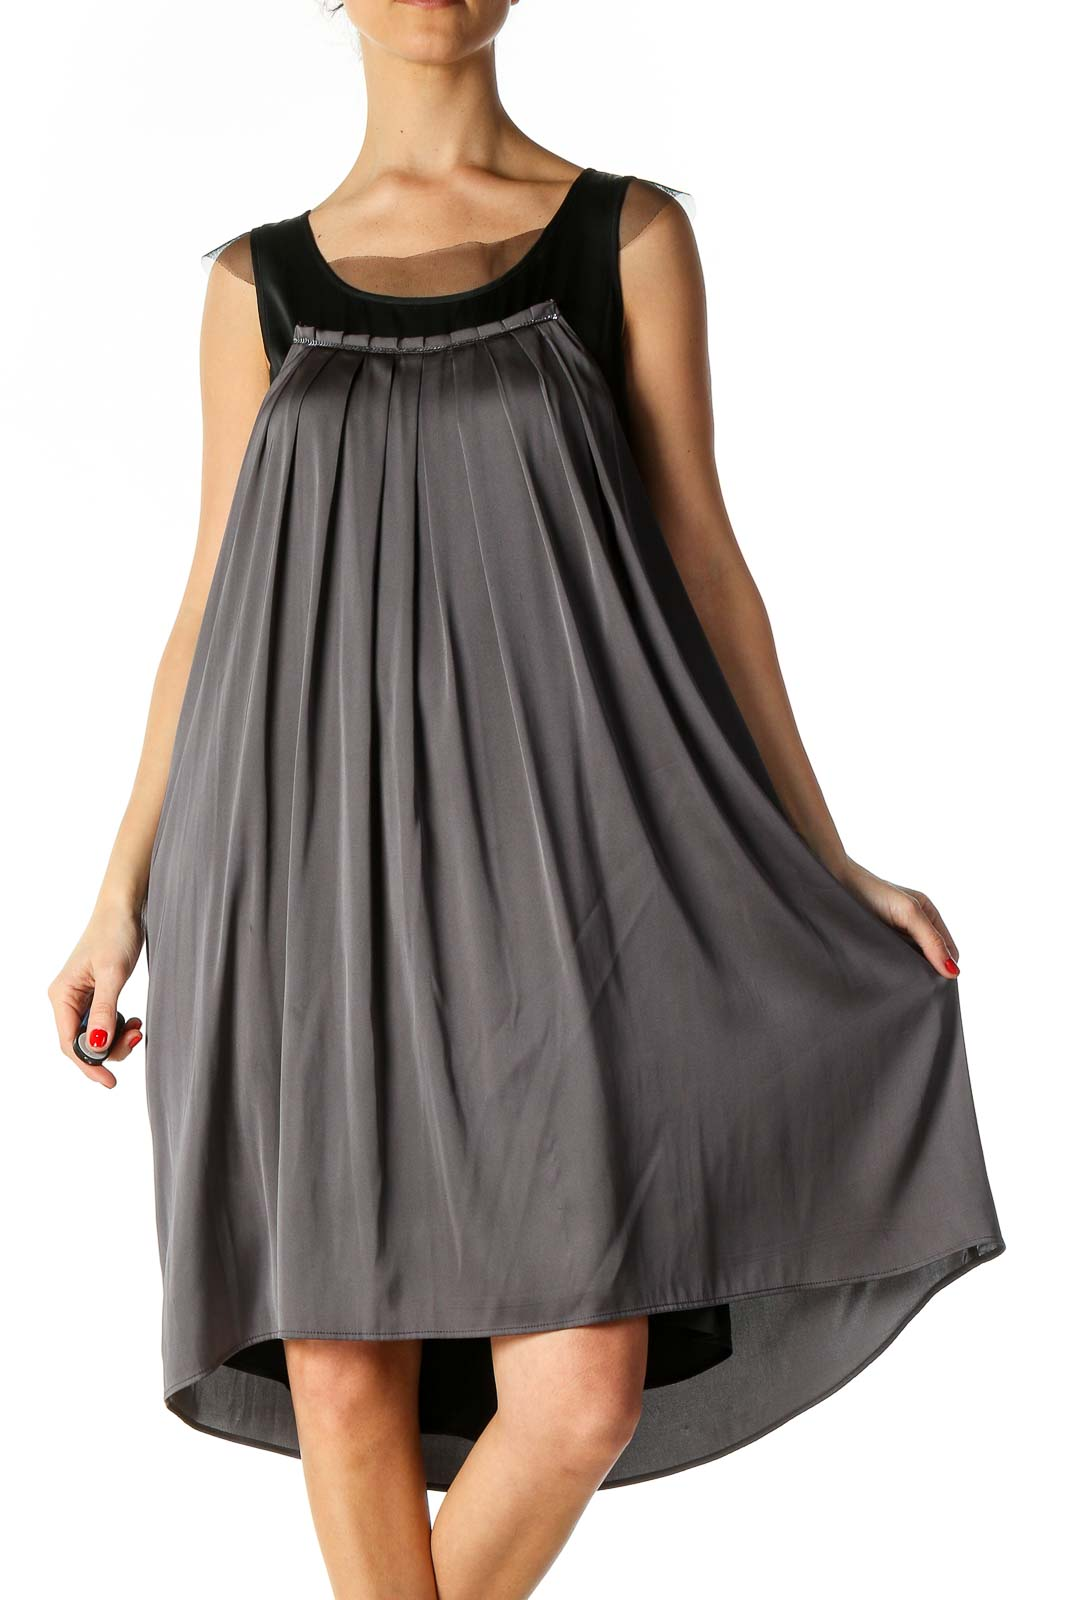 Gray Solid Retro Dress Front